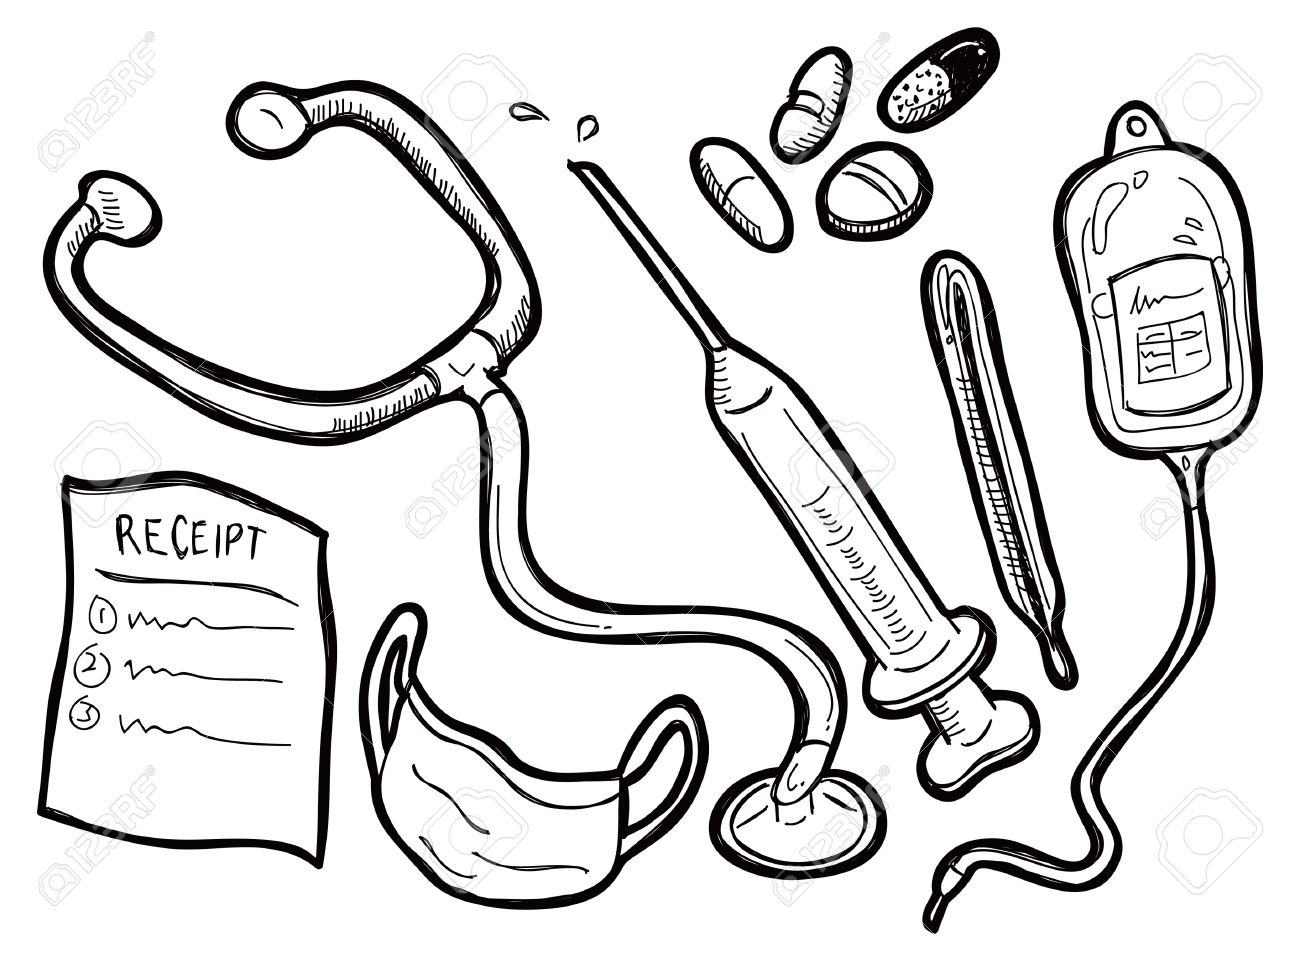 Doctor Tools Drawing At Getdrawings